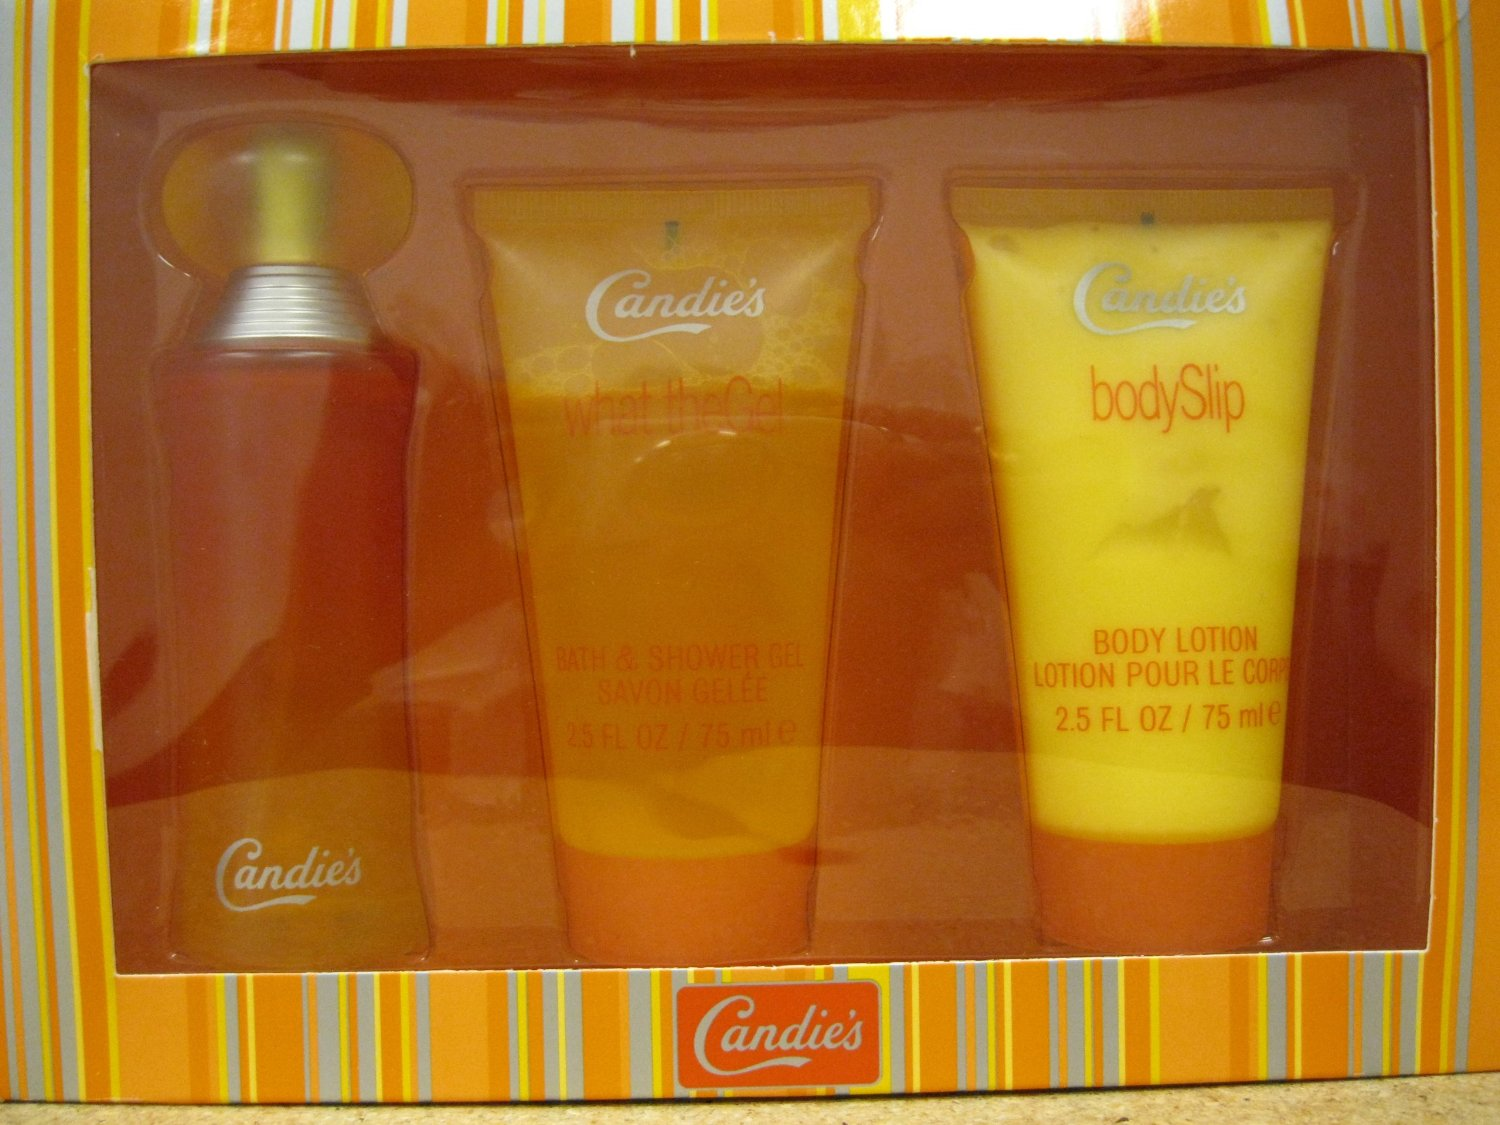 Candies by Liz Claiborne 3 Pc Gift Set for women